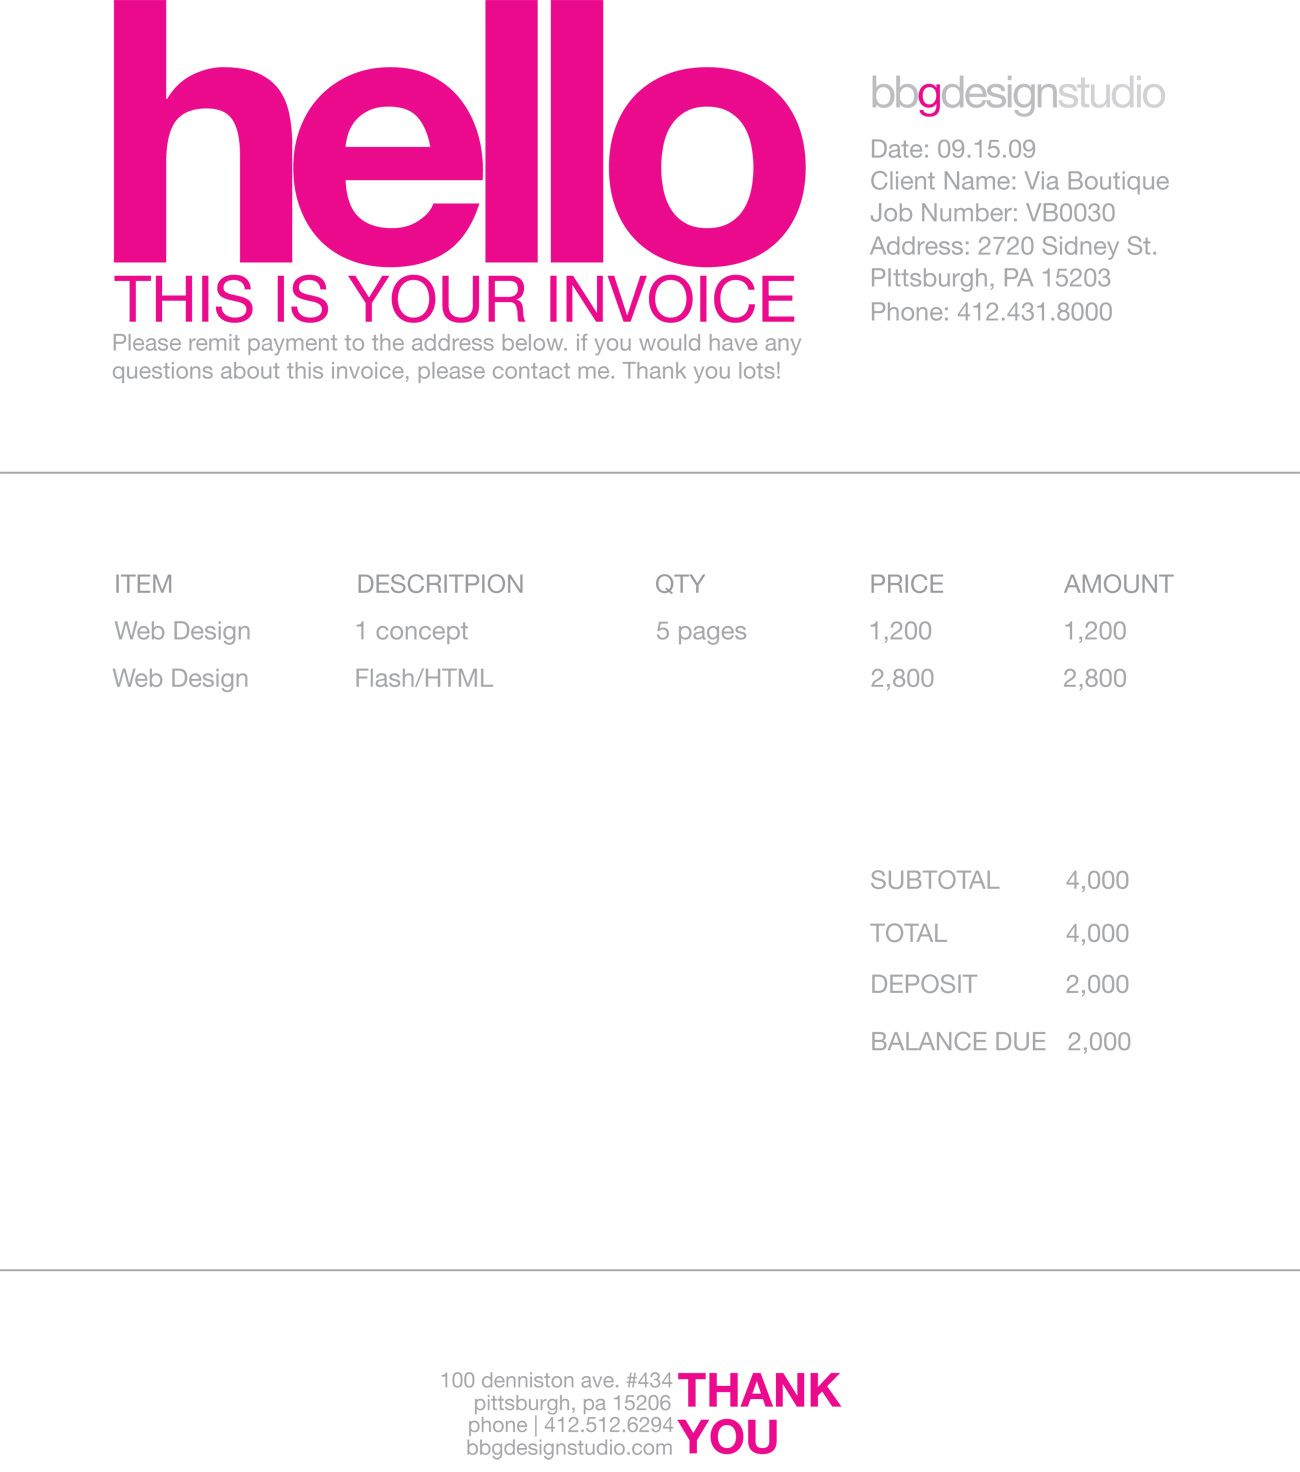 Laceychabertus  Unusual  Images About Invoice Design On Pinterest With Heavenly Window Cleaning Invoice Template Besides Ms Custom Invoice Template Furthermore Free Tax Invoice Template With Delectable Meaning Of Invoice Price Also Find Invoice In Addition Sample Of Invoices For Services And Commercial Invoice Template Canada As Well As Copy Of A Blank Invoice Additionally Invoice Sale From Pinterestcom With Laceychabertus  Heavenly  Images About Invoice Design On Pinterest With Delectable Window Cleaning Invoice Template Besides Ms Custom Invoice Template Furthermore Free Tax Invoice Template And Unusual Meaning Of Invoice Price Also Find Invoice In Addition Sample Of Invoices For Services From Pinterestcom